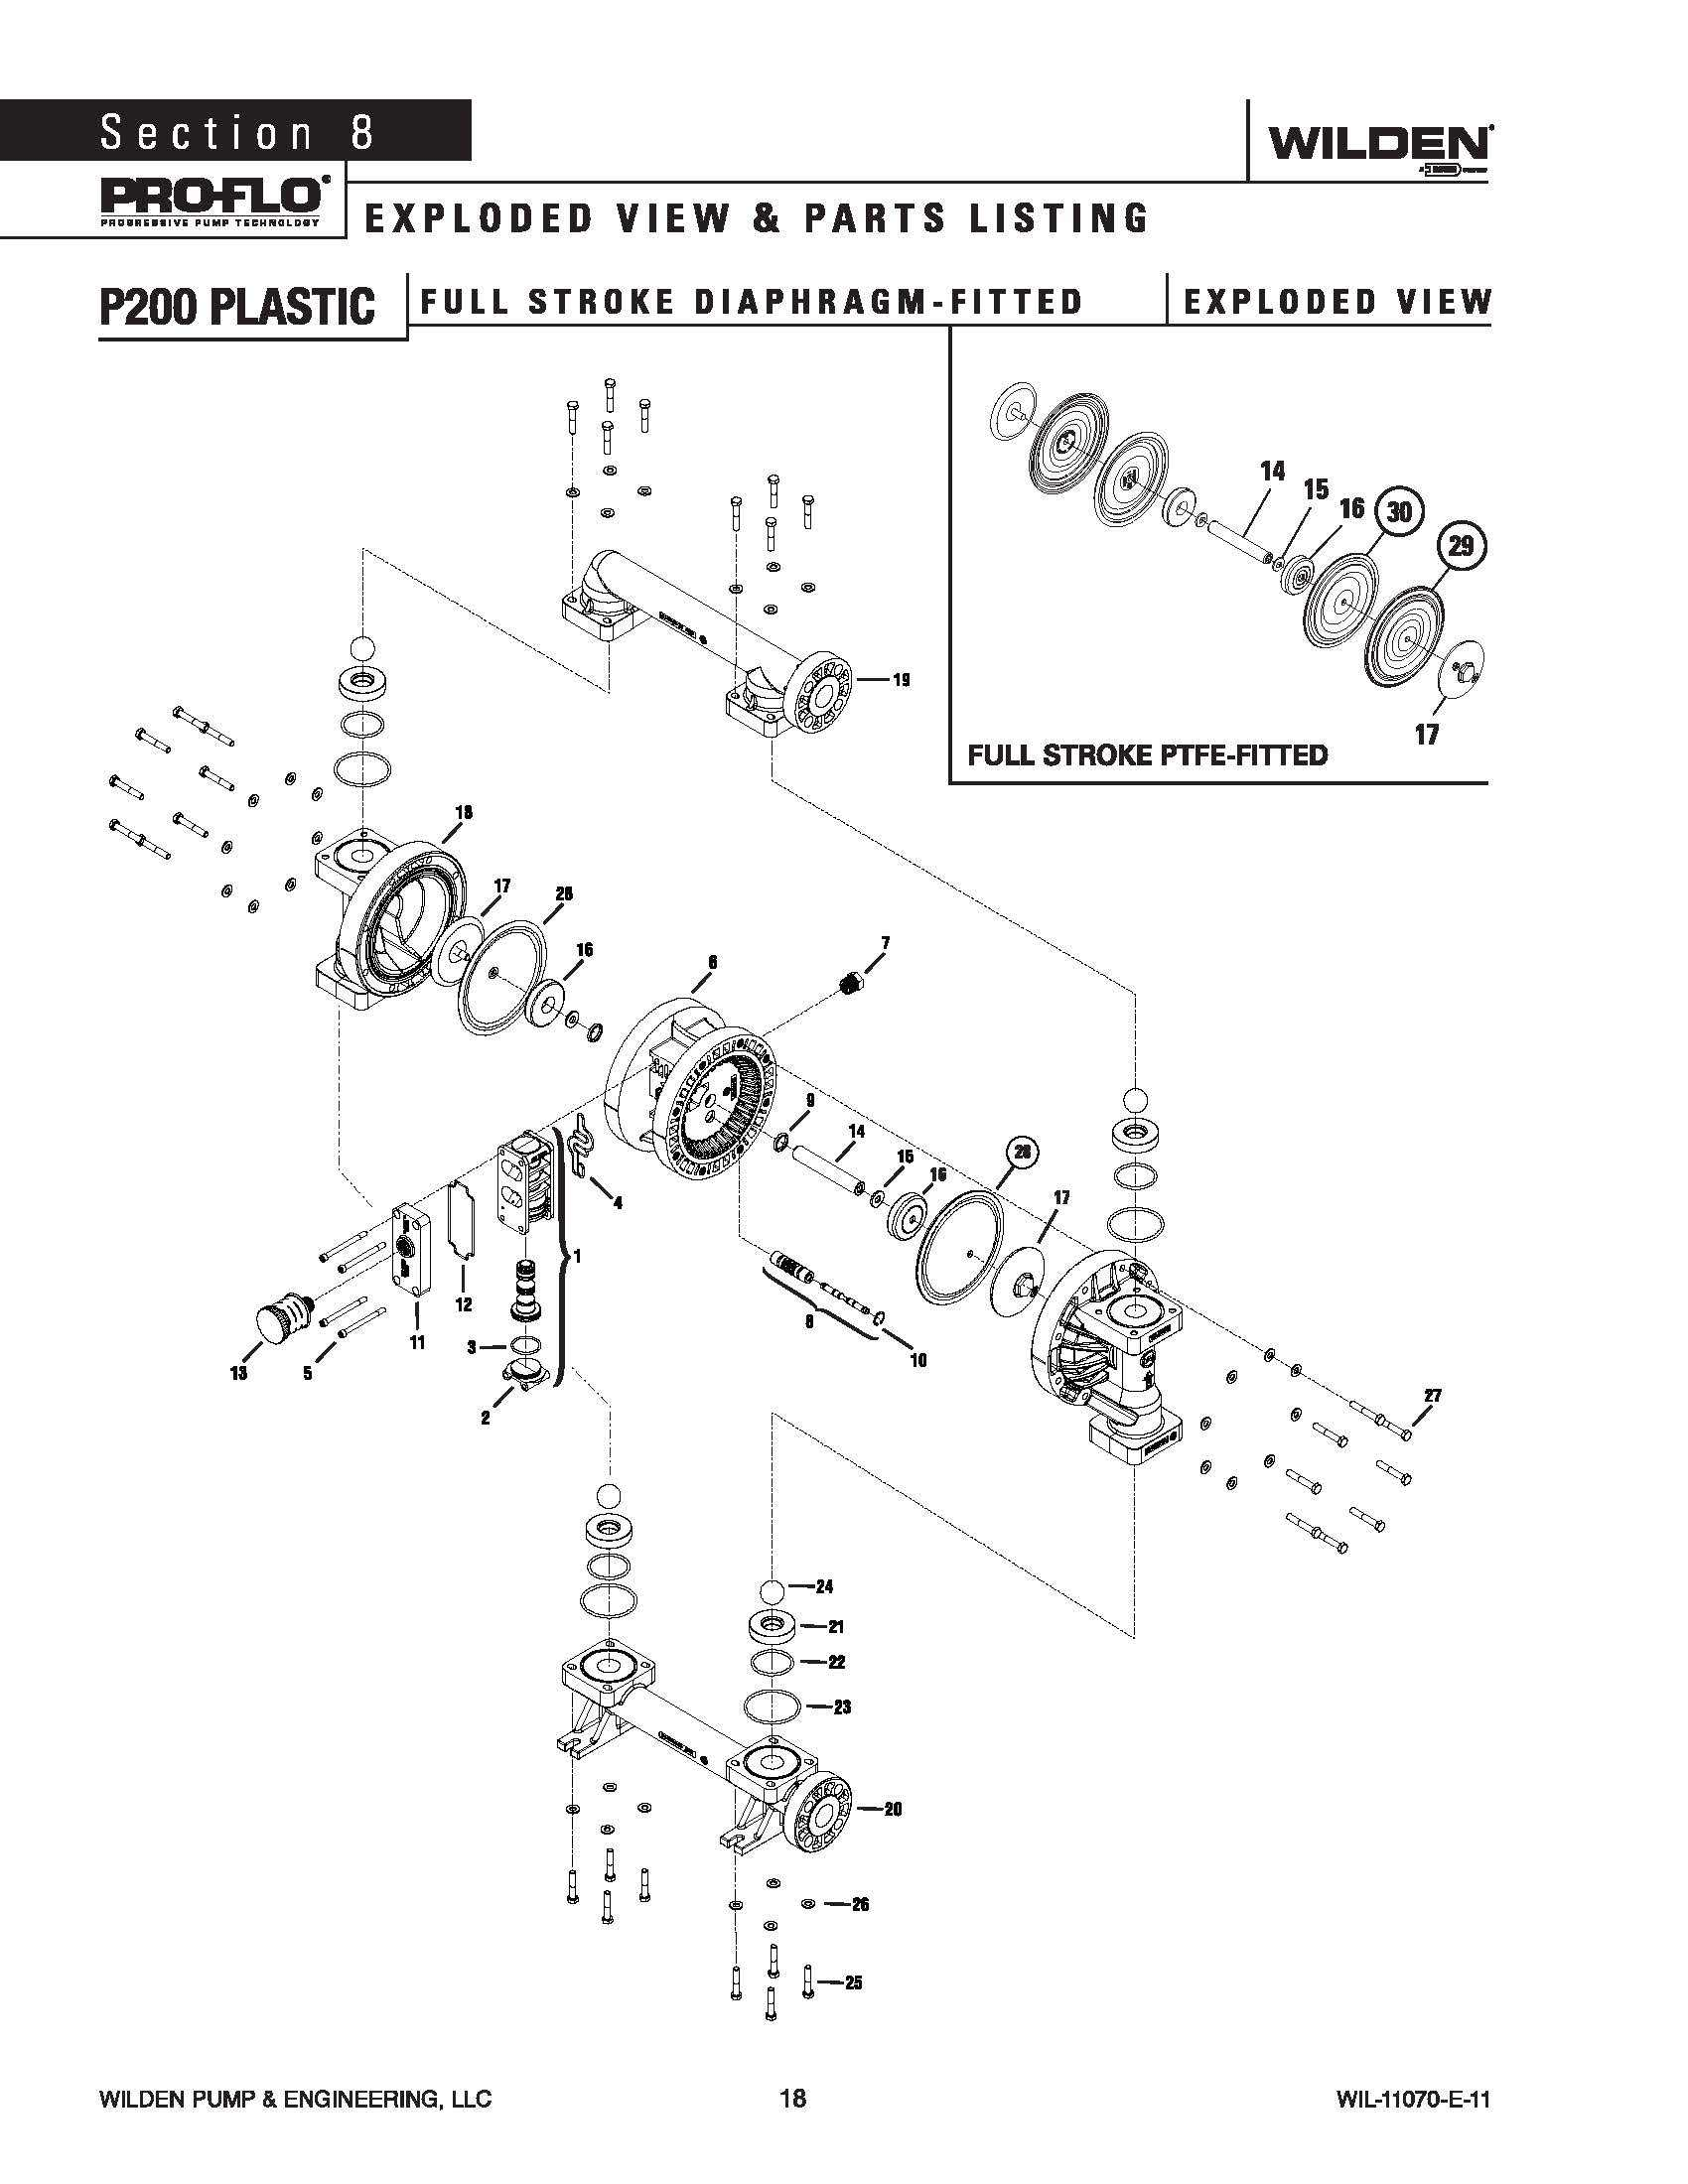 Wilden P200 Advanced Plastic Full Stroke Exploded View Parts